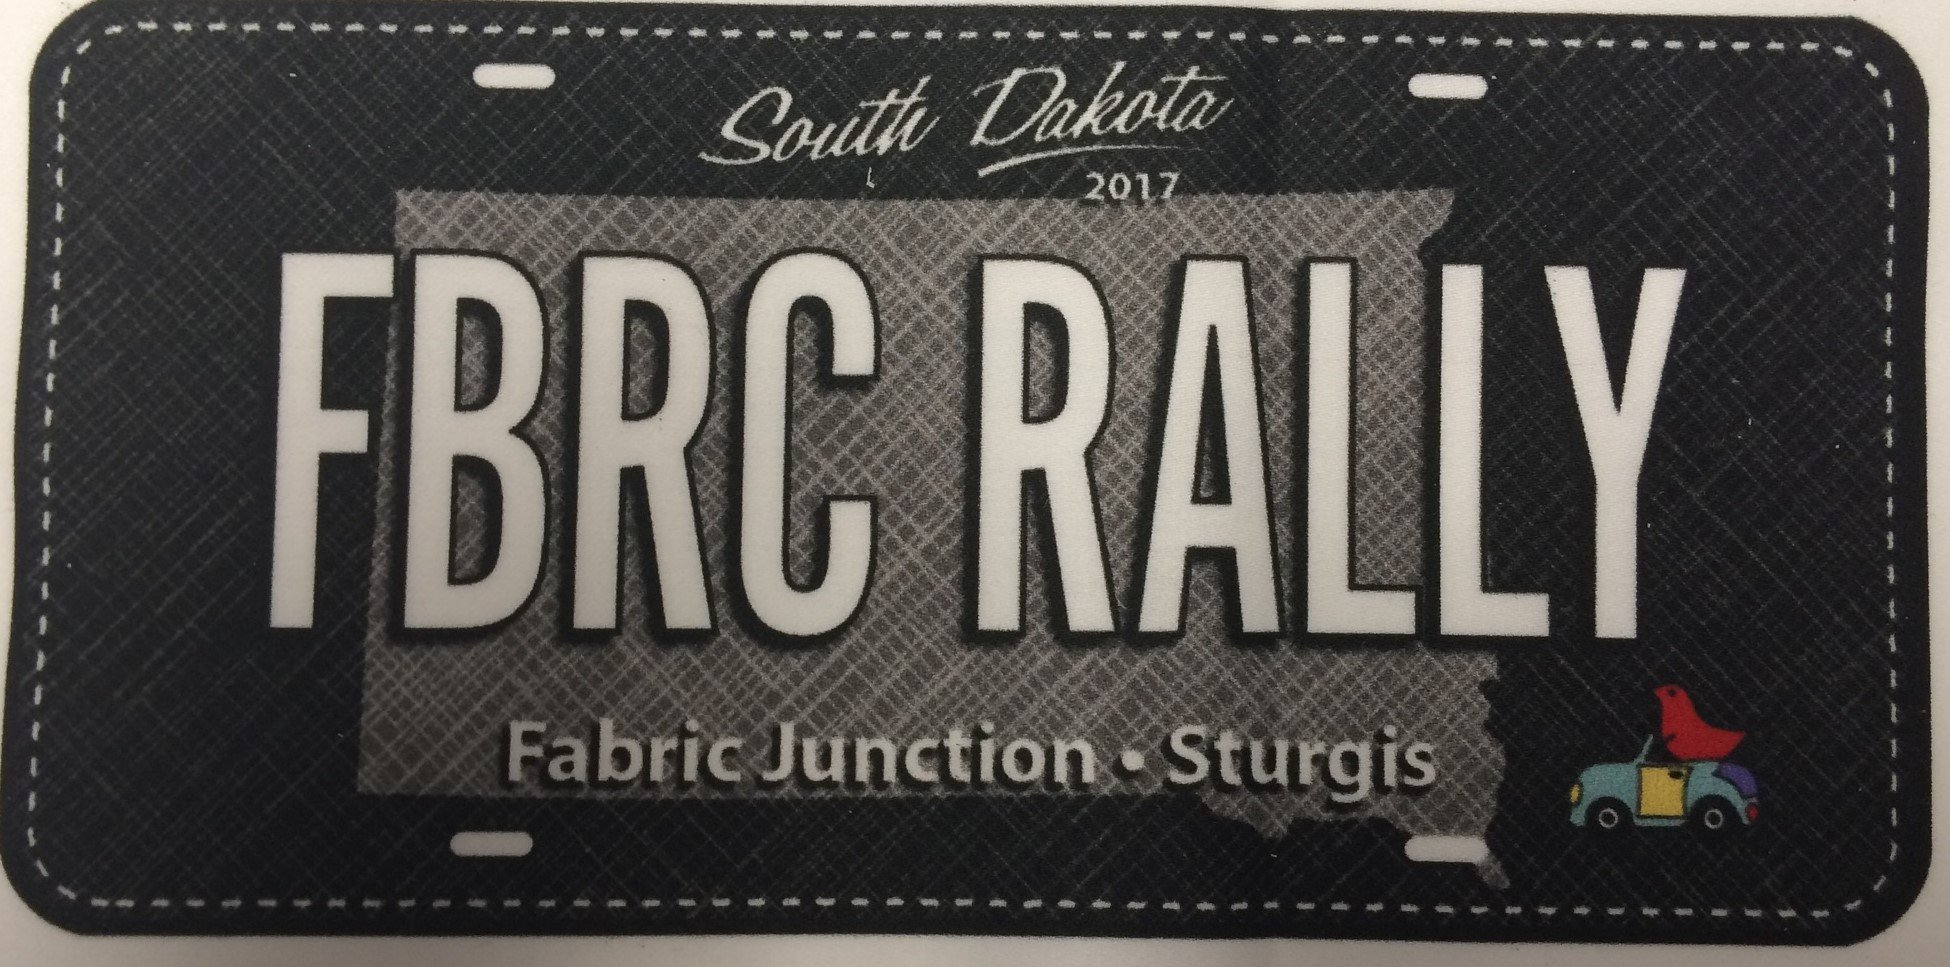 Fabric Junction Fabric Rally License Plate 2017